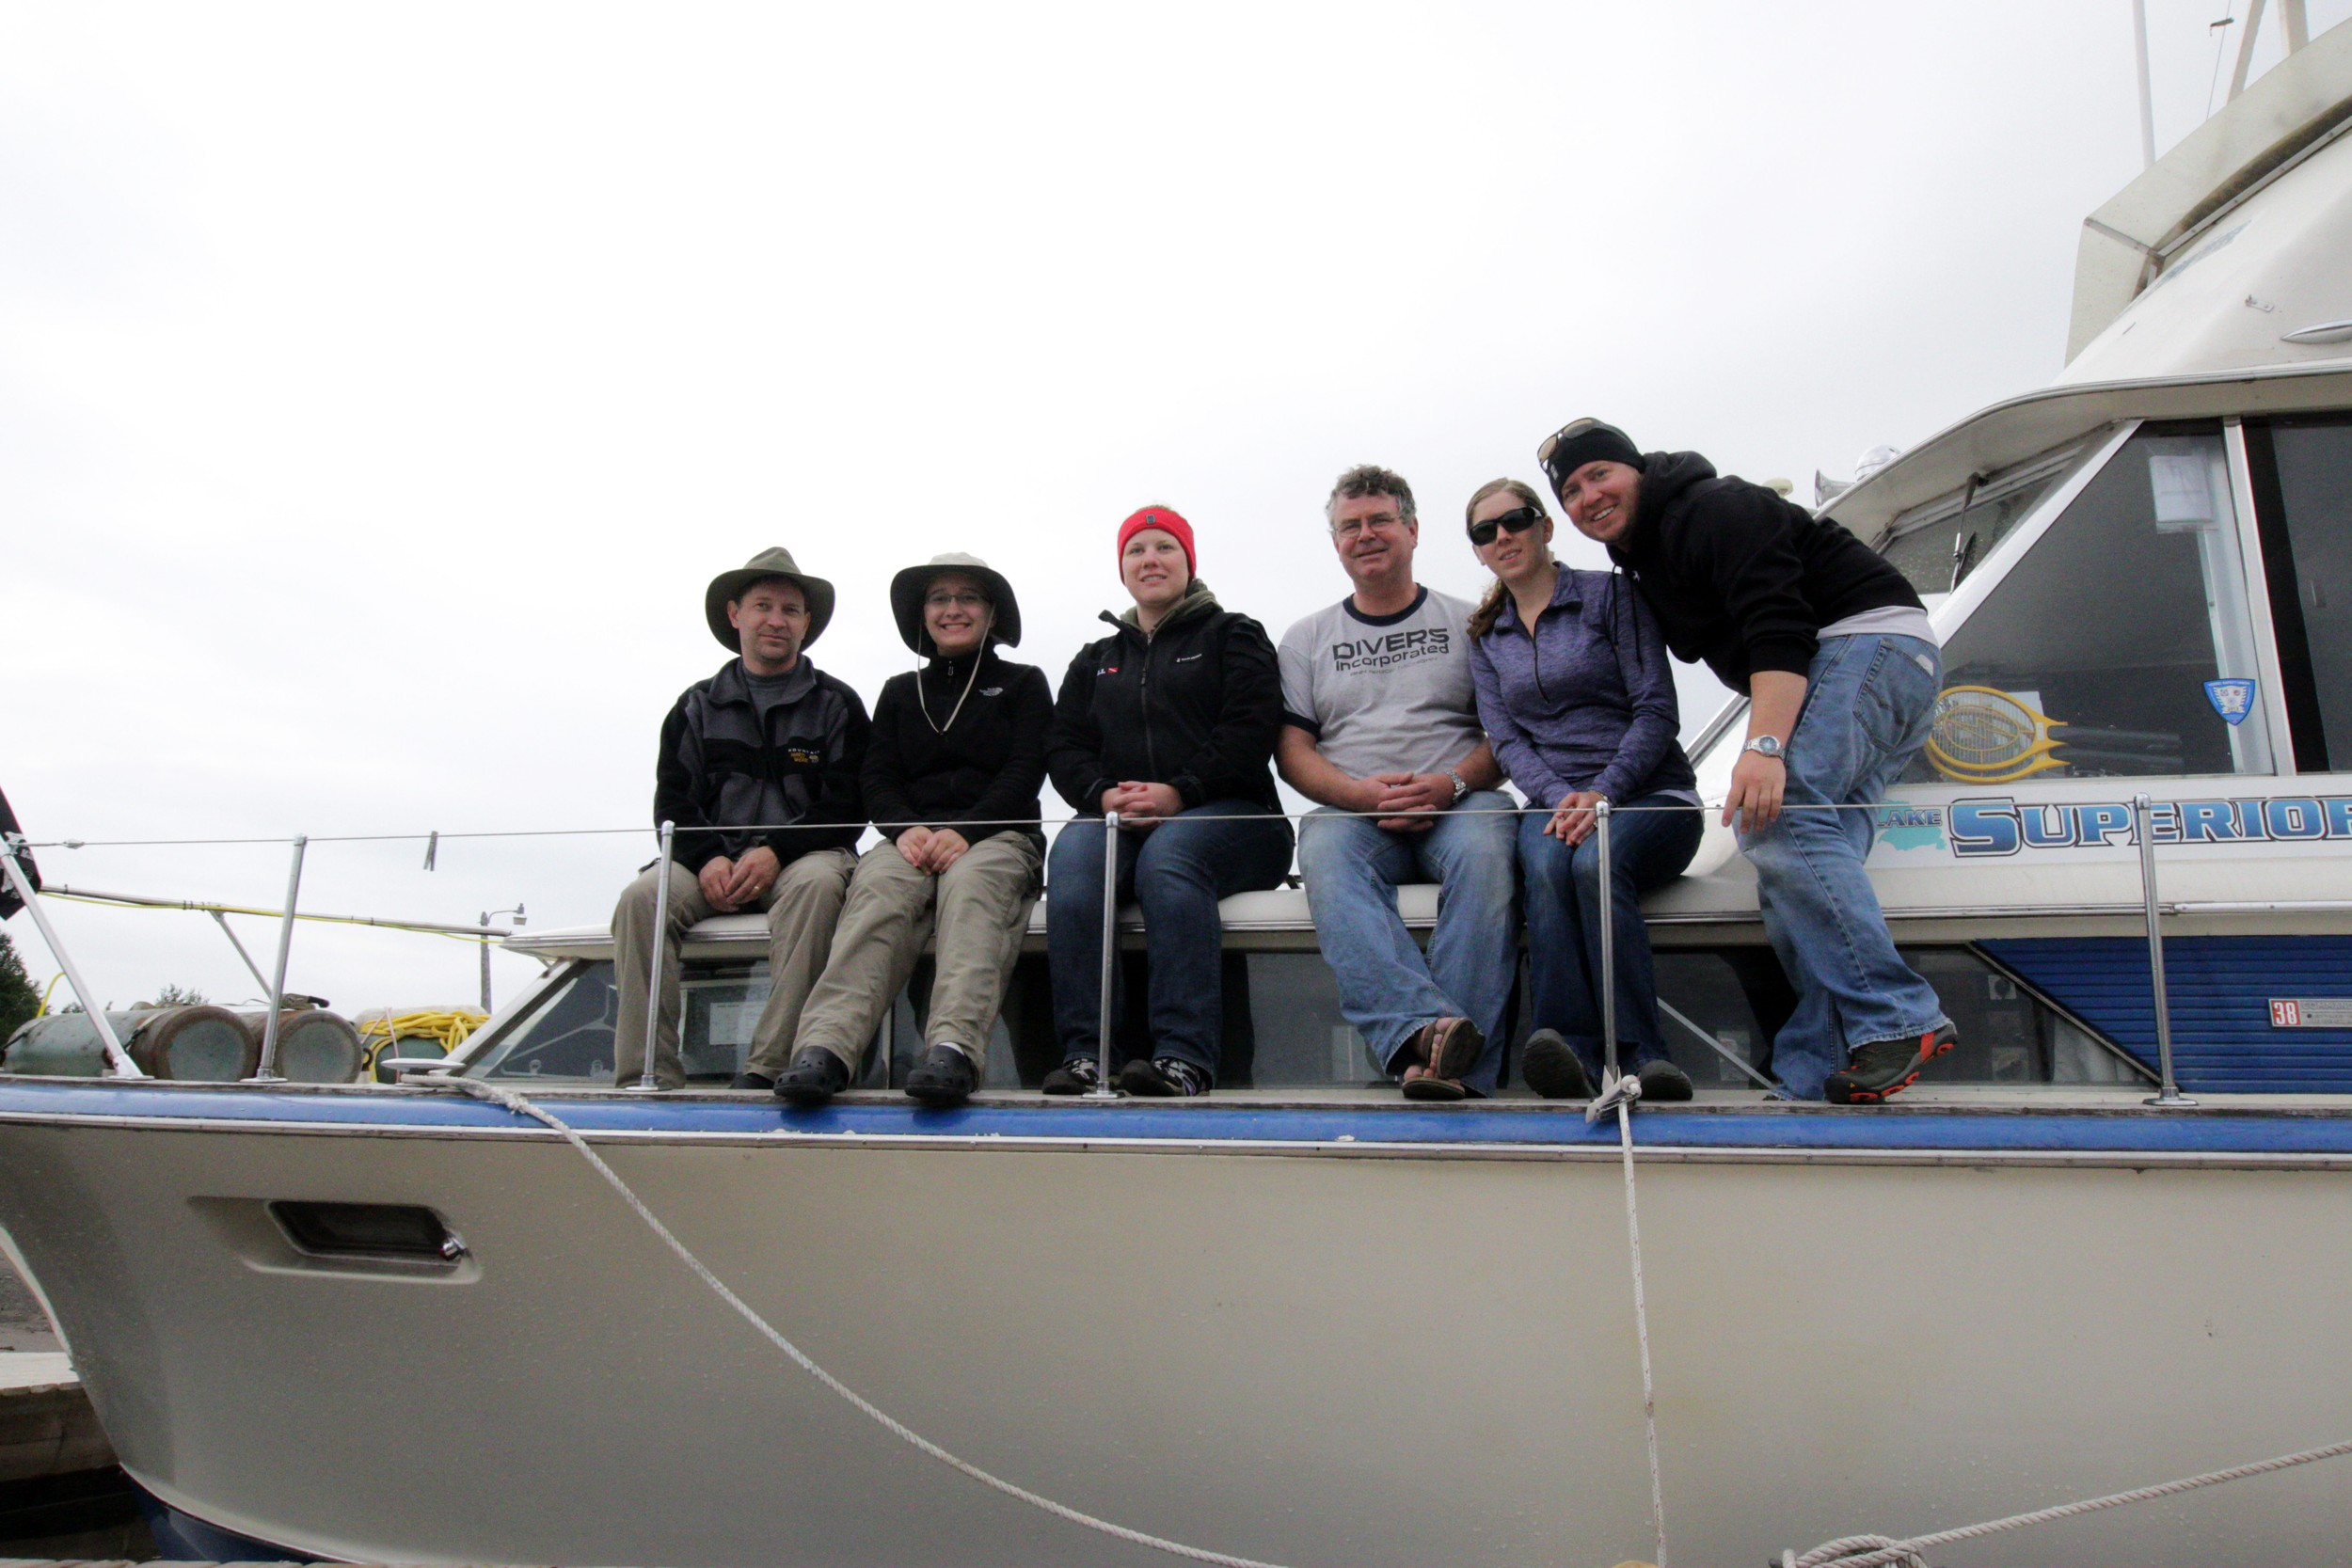 The whole group from the July 2014 Diver's Incorporated trip to Isle Royale.